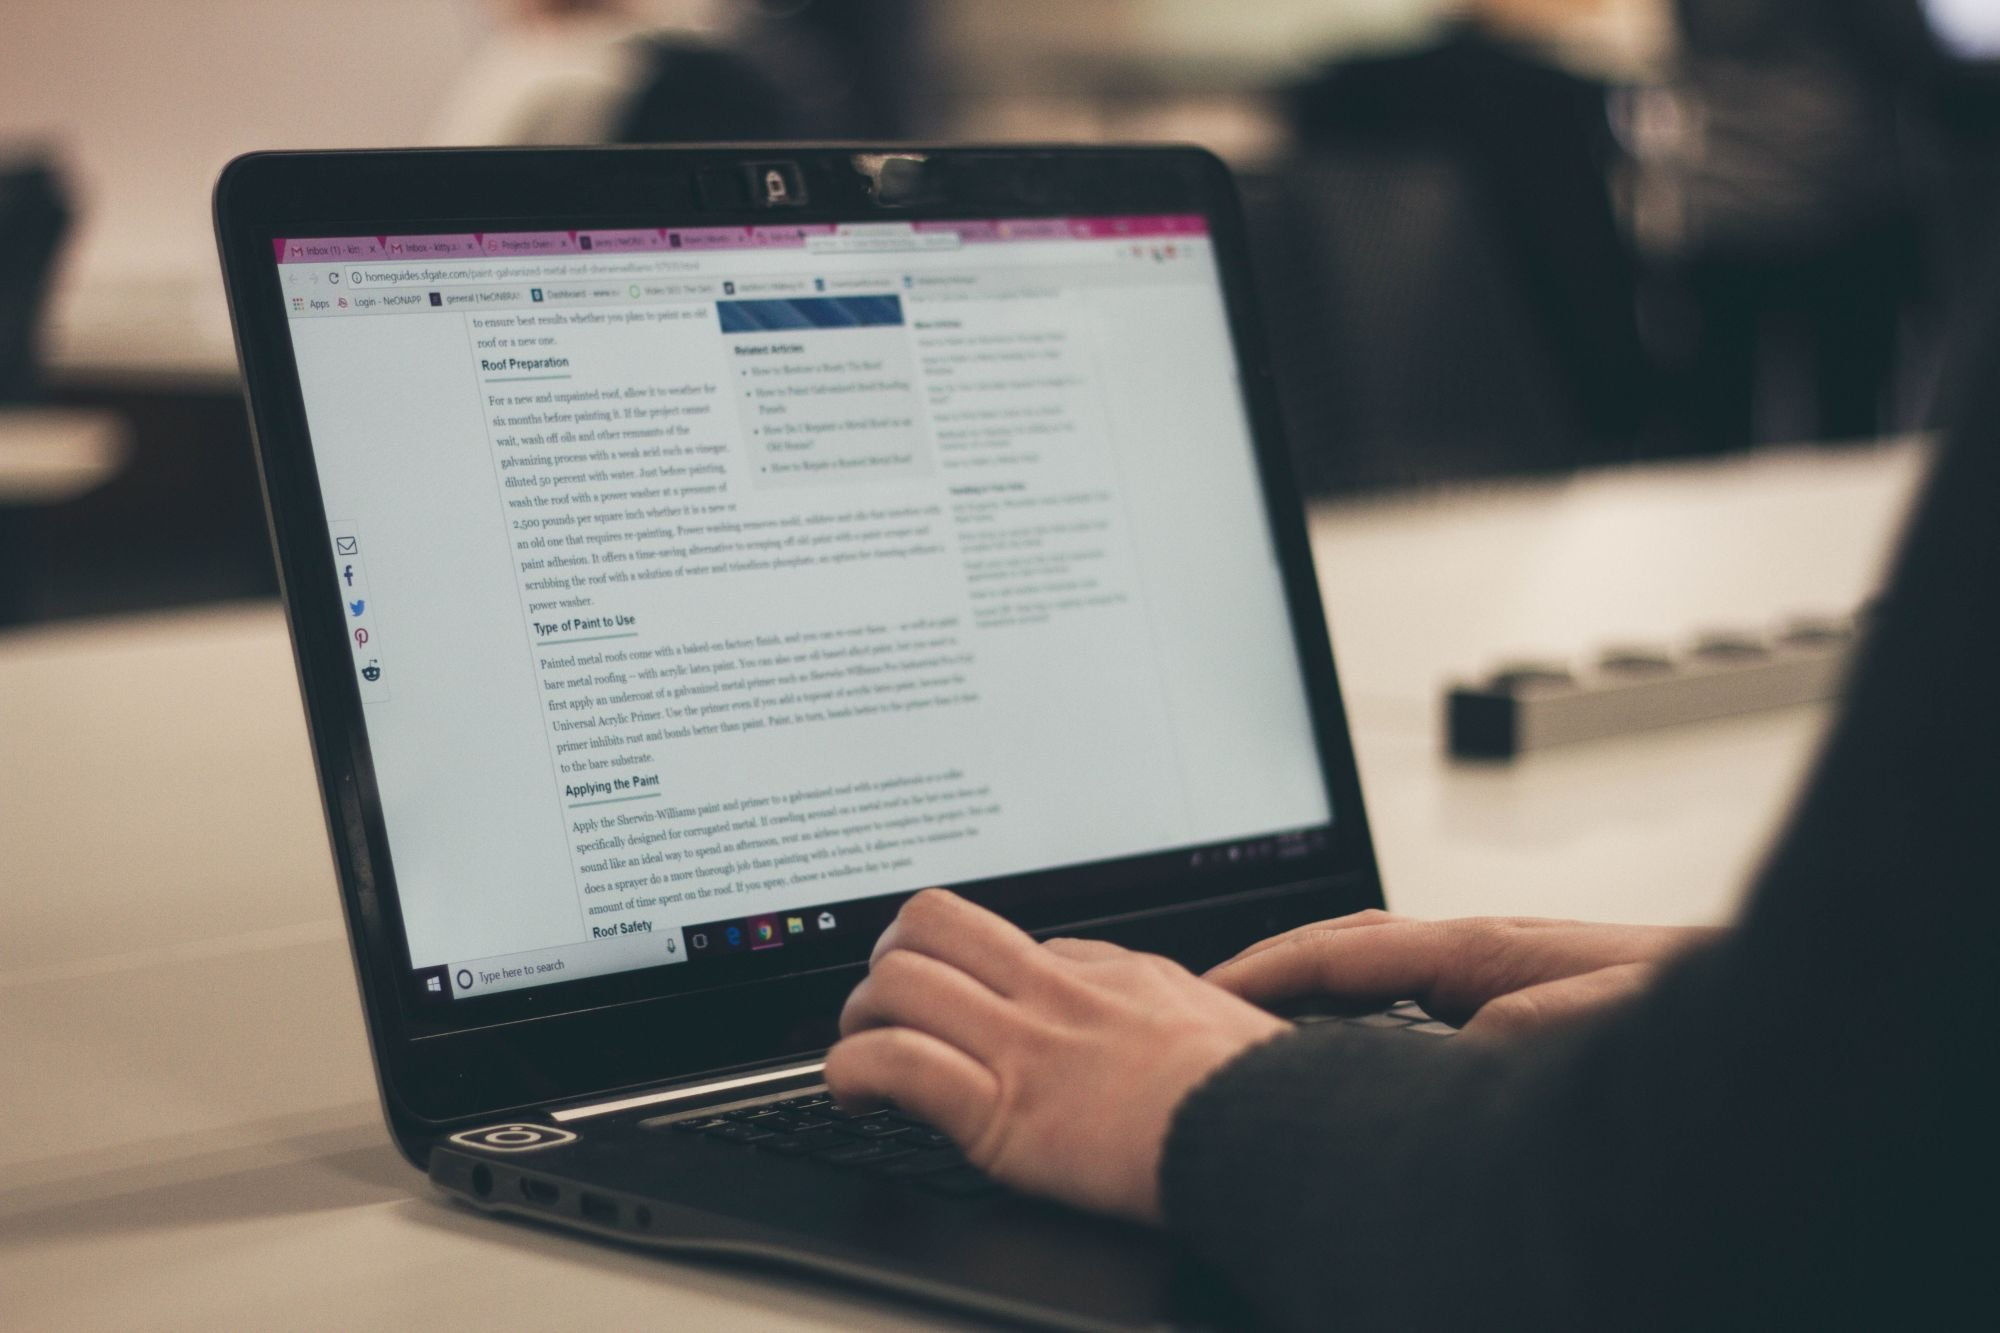 Written Content For SEO Being Reviewed On Laptop